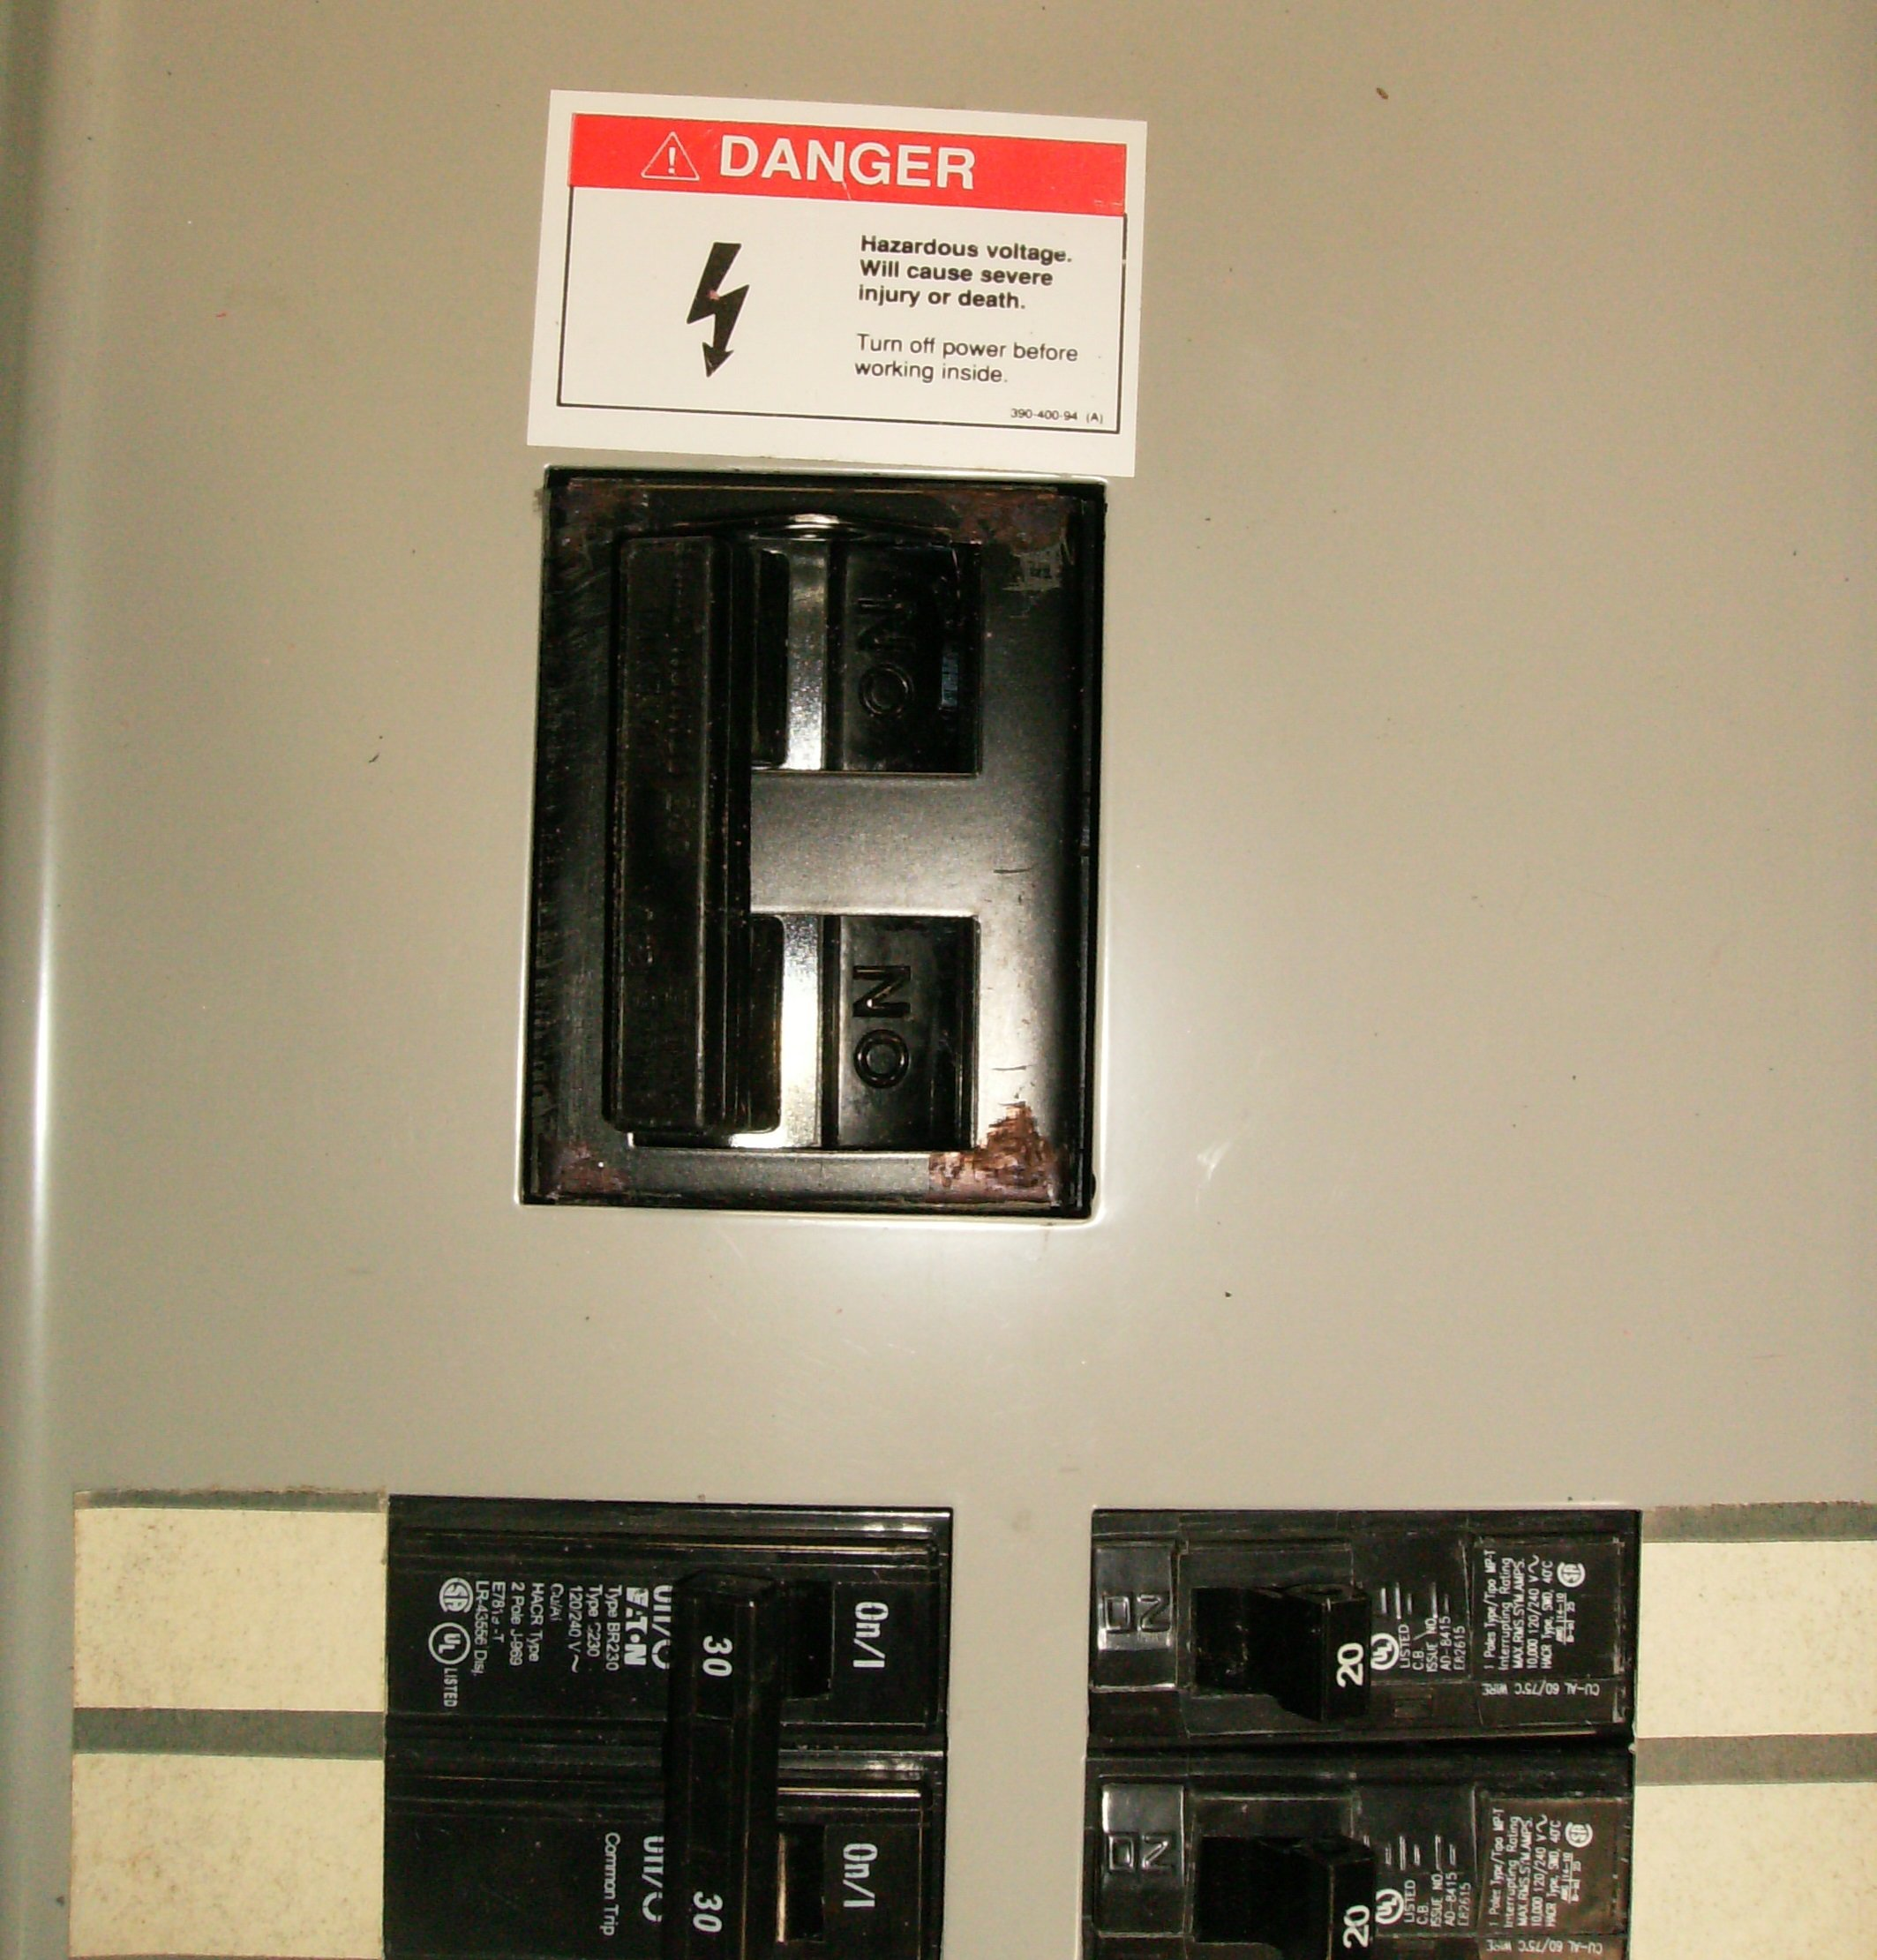 Tb 200a Thomas And Betts Challenger Westinghouse Generator 200amp Main Circuit Breaker With 60amp Interlock Kit 150 Or 200 Amp Panels